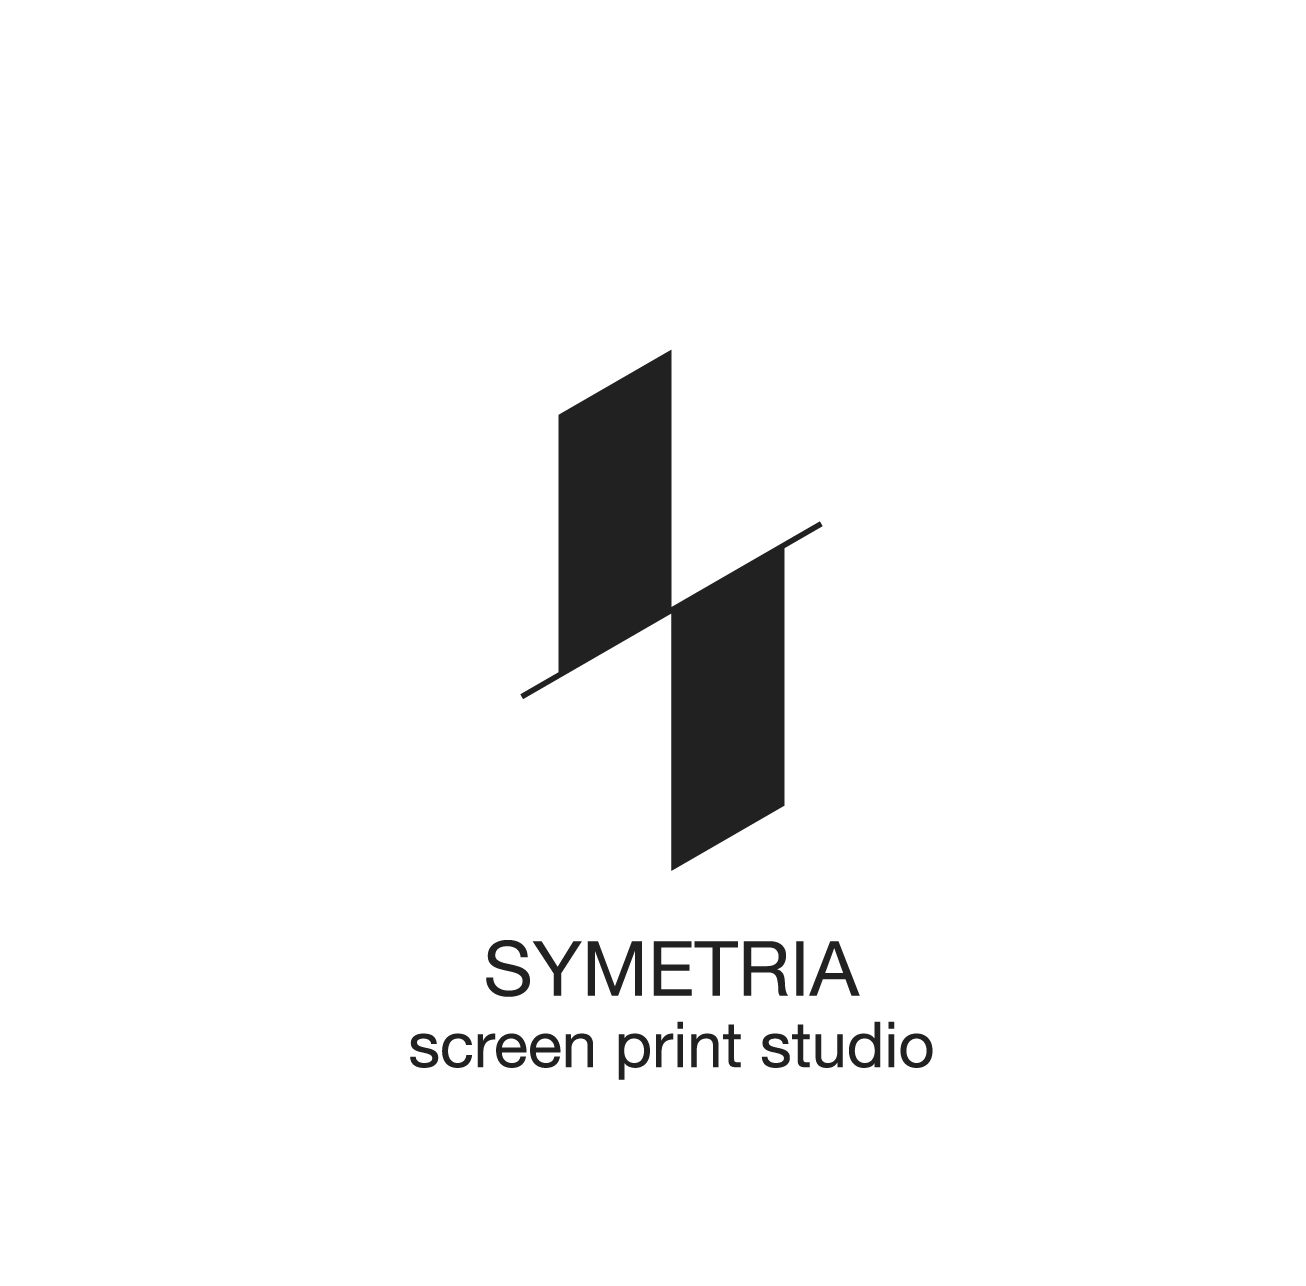 SYMETRIA screen print studio